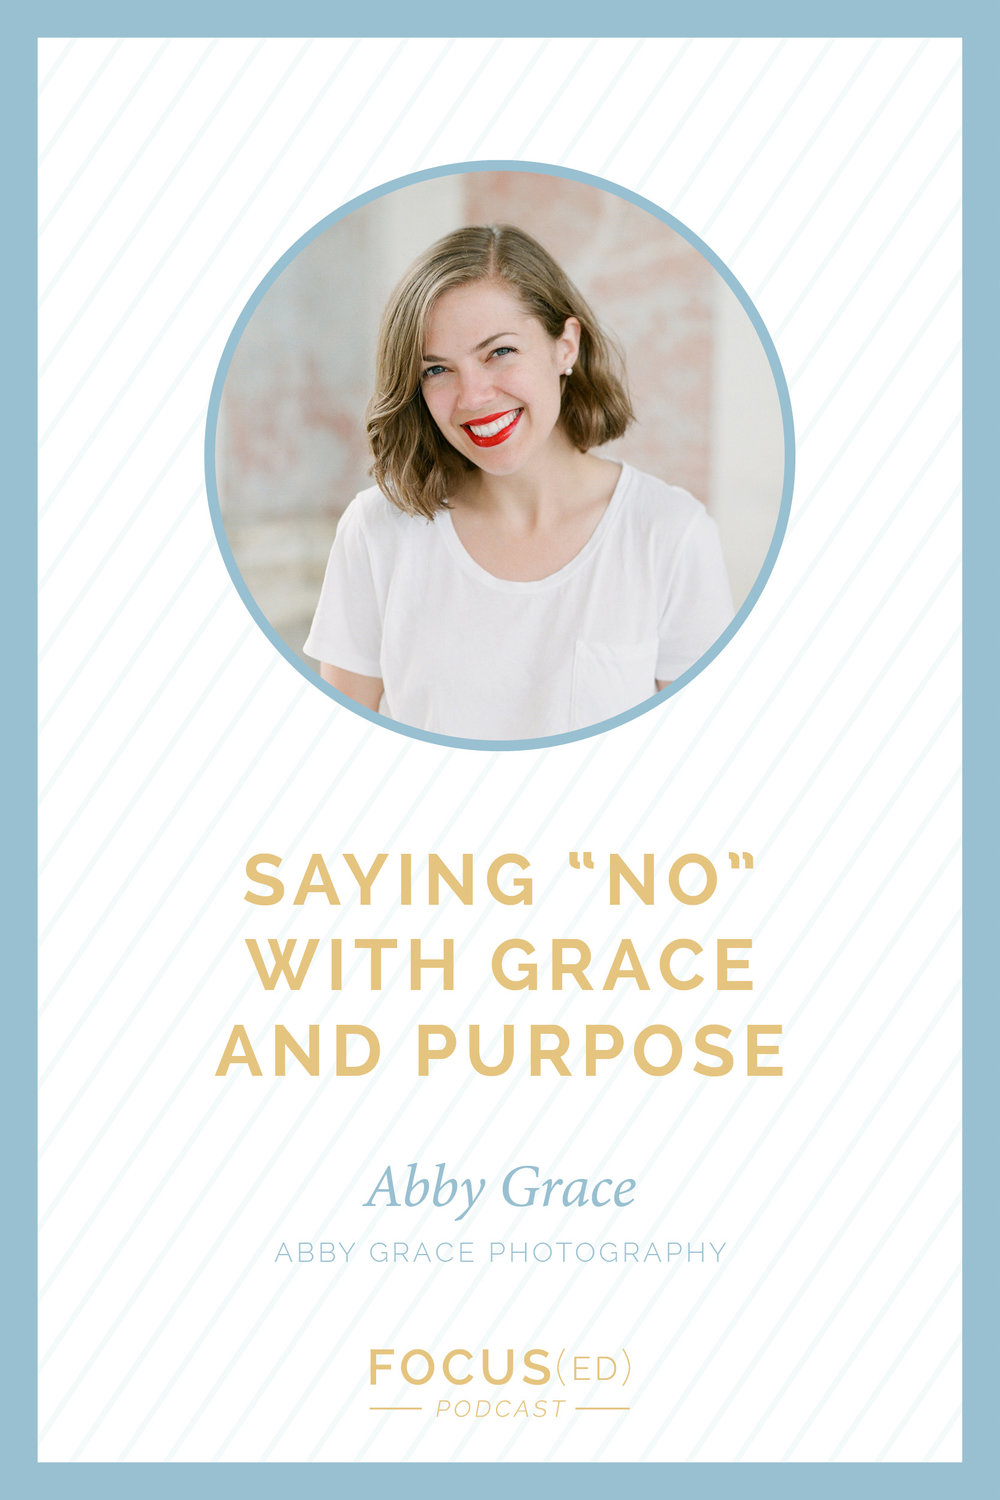 Saying 'no' can lead to a better 'yes' | Focus(ed) Podcast | Abby Grace Photography